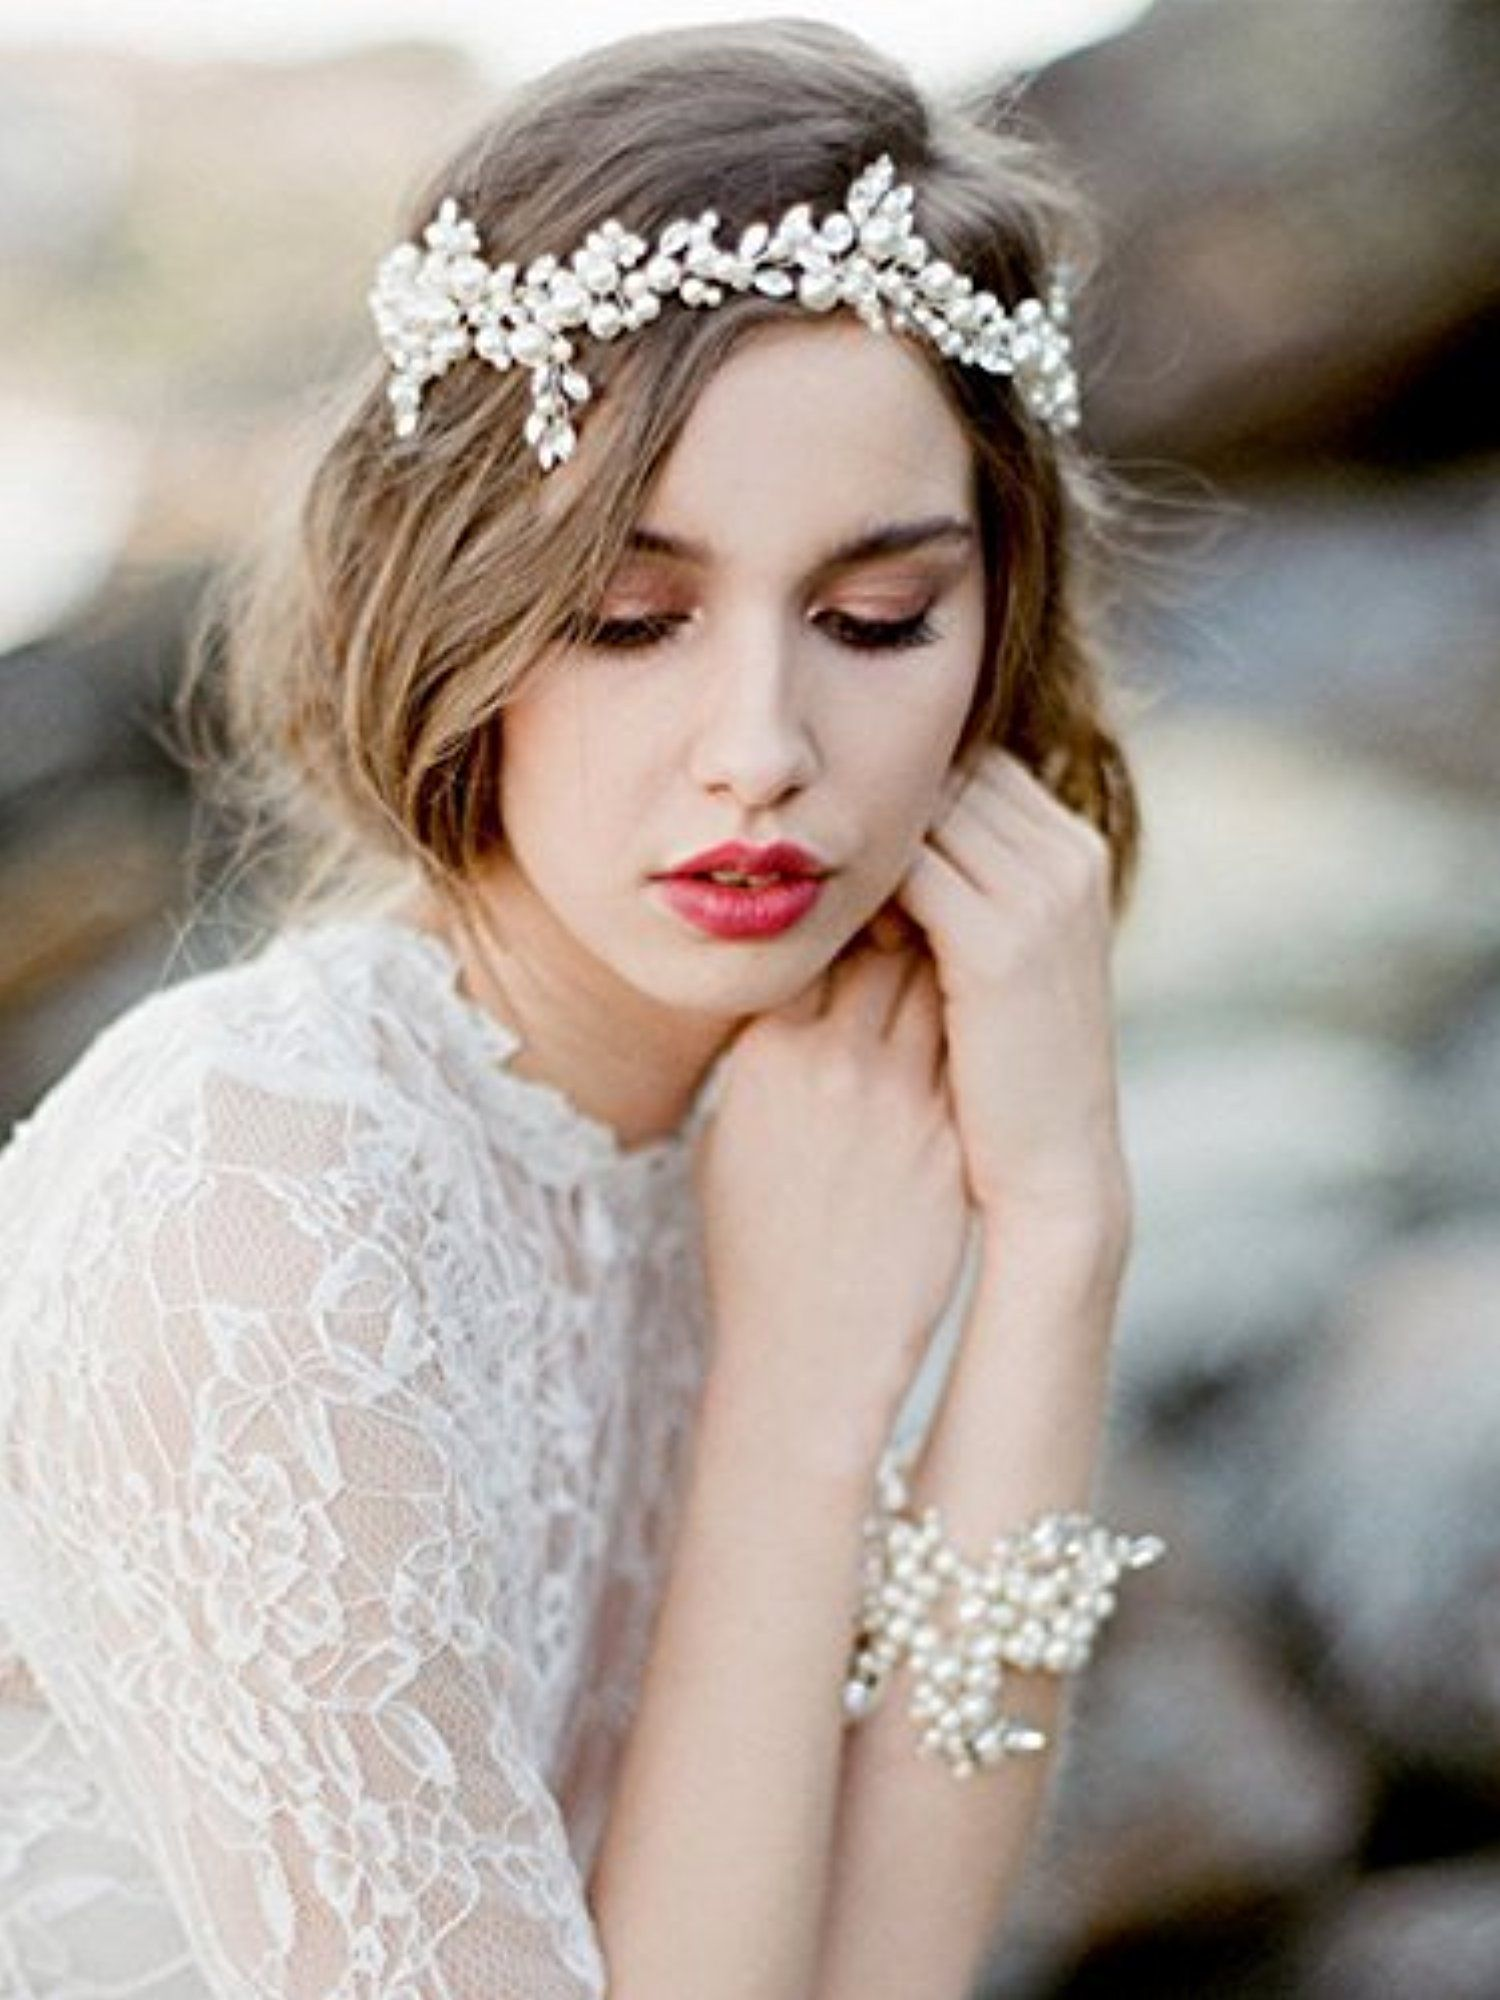 Venusvi wedding headbands for bride bridal headpiece with bead and